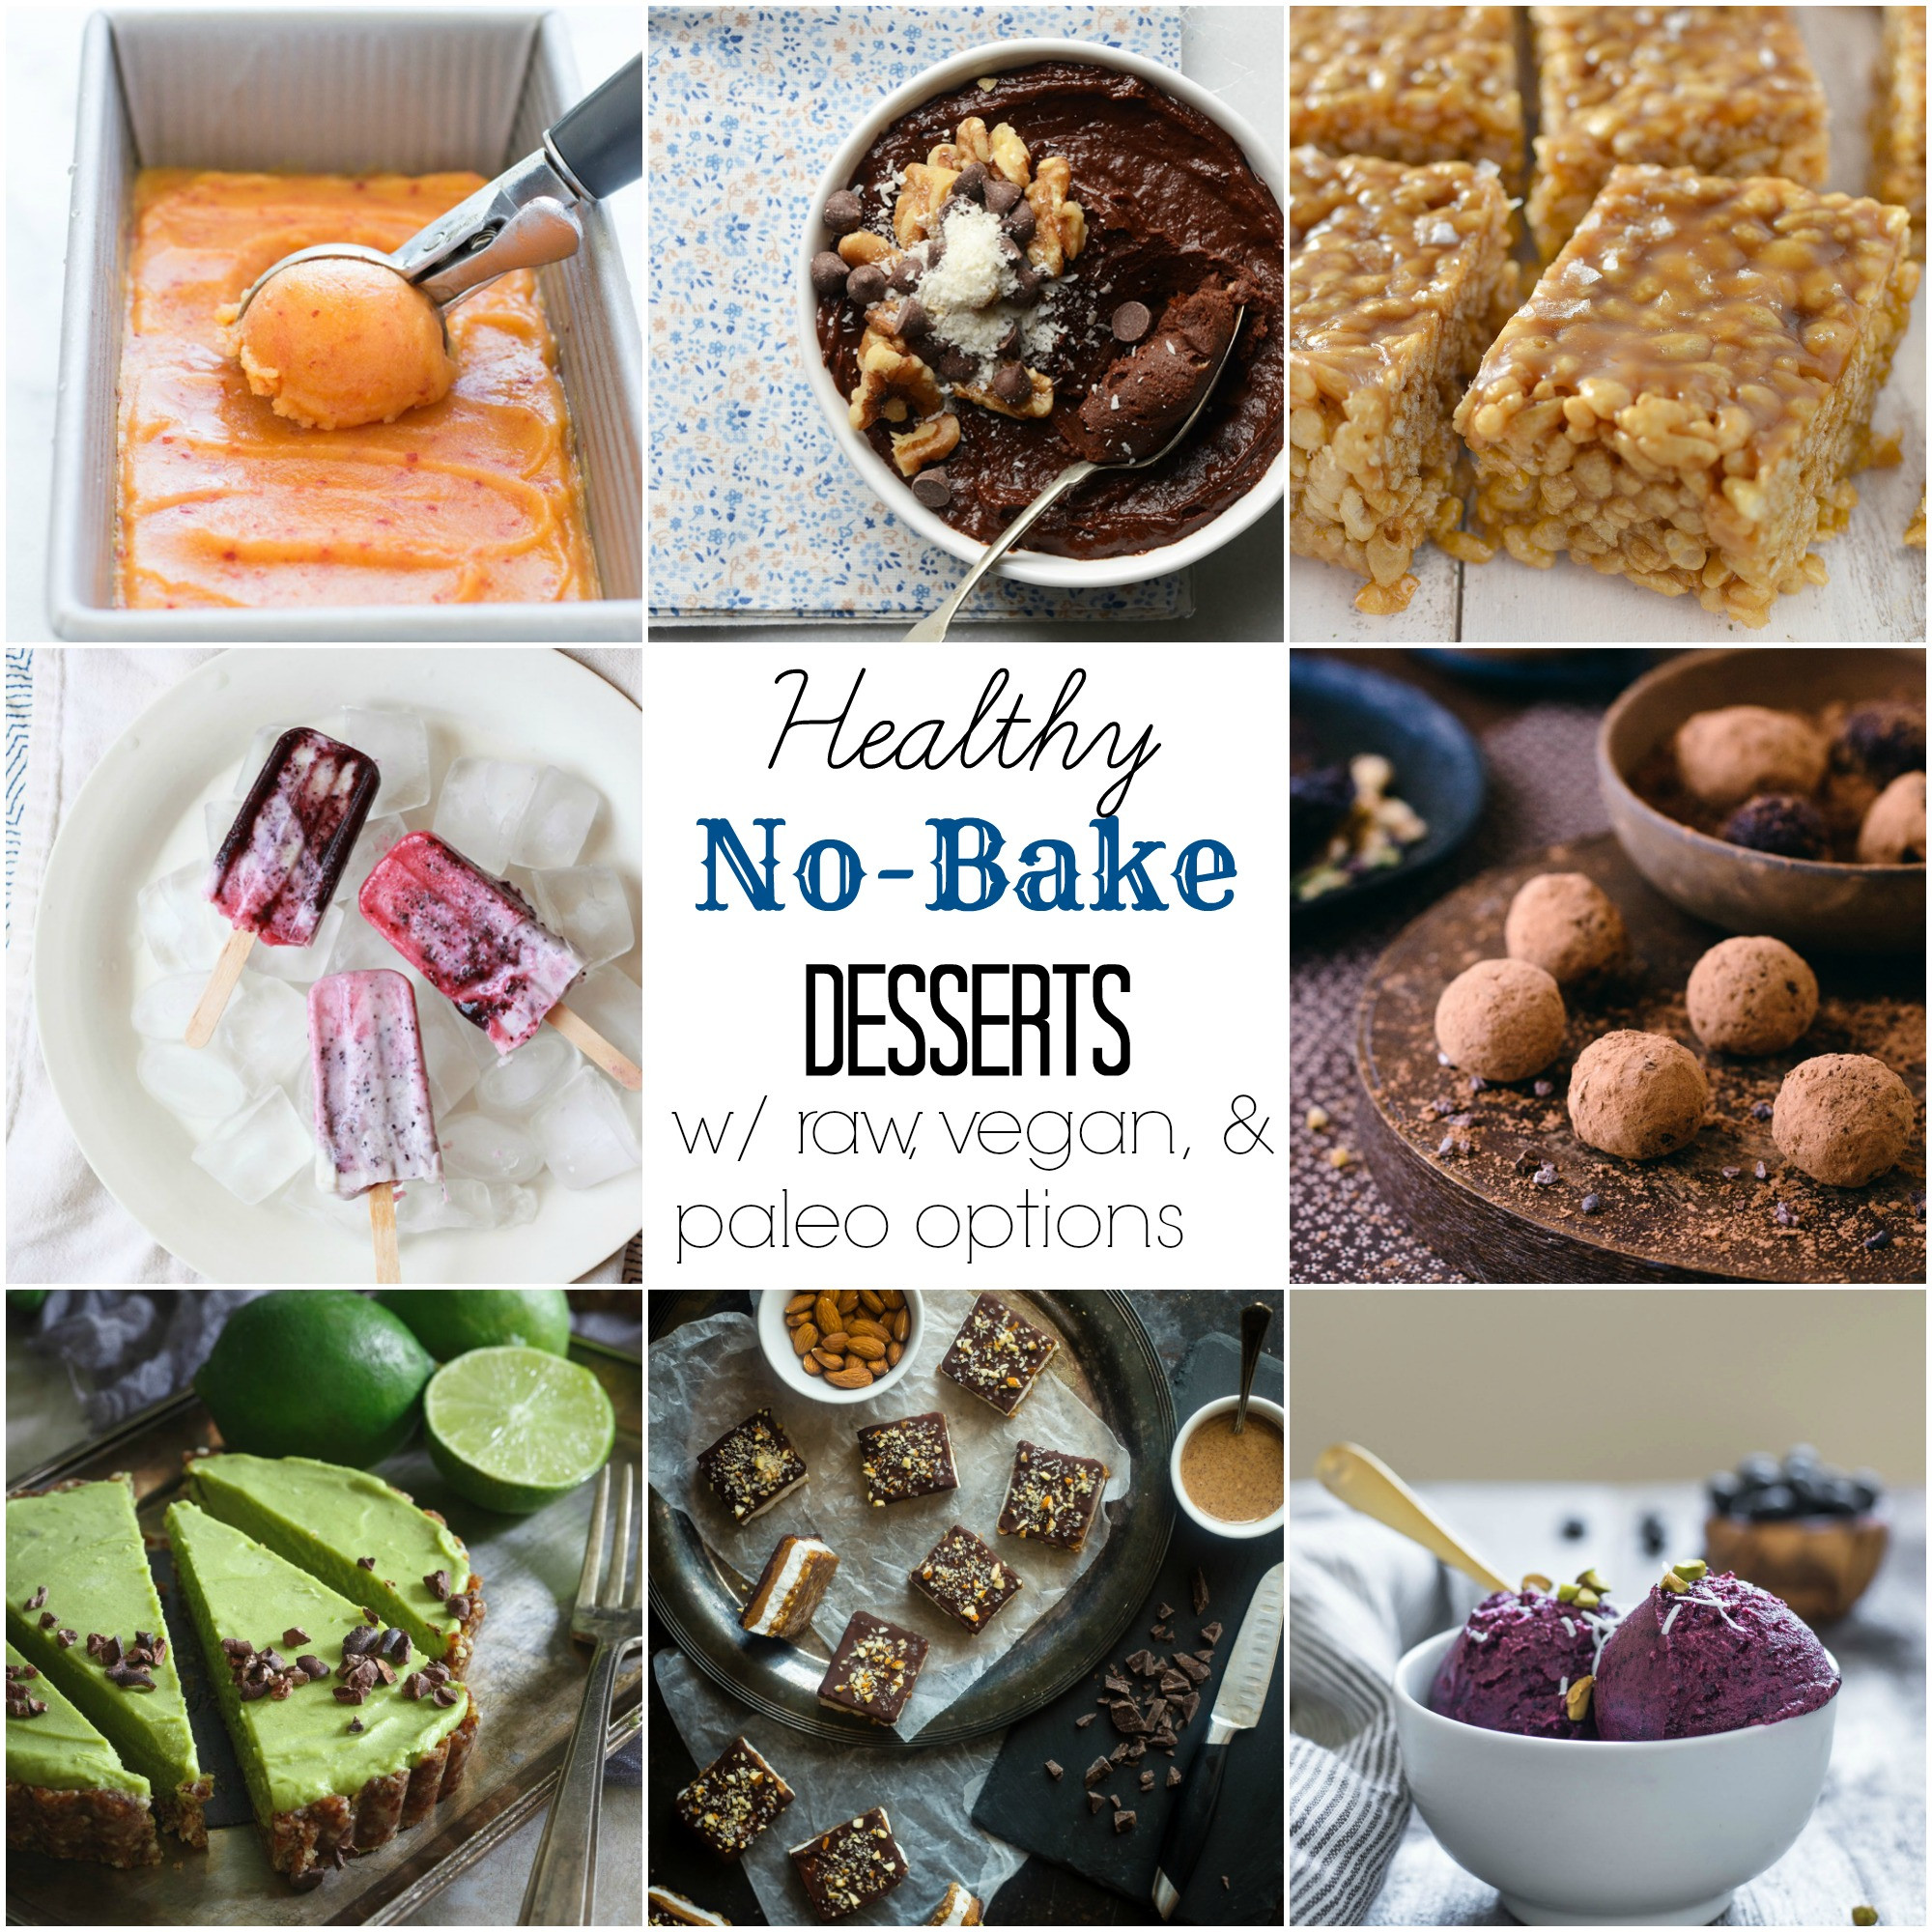 No Bake Healthy Desserts  53 Healthy No Bake Desserts With Vegan and Paleo Options